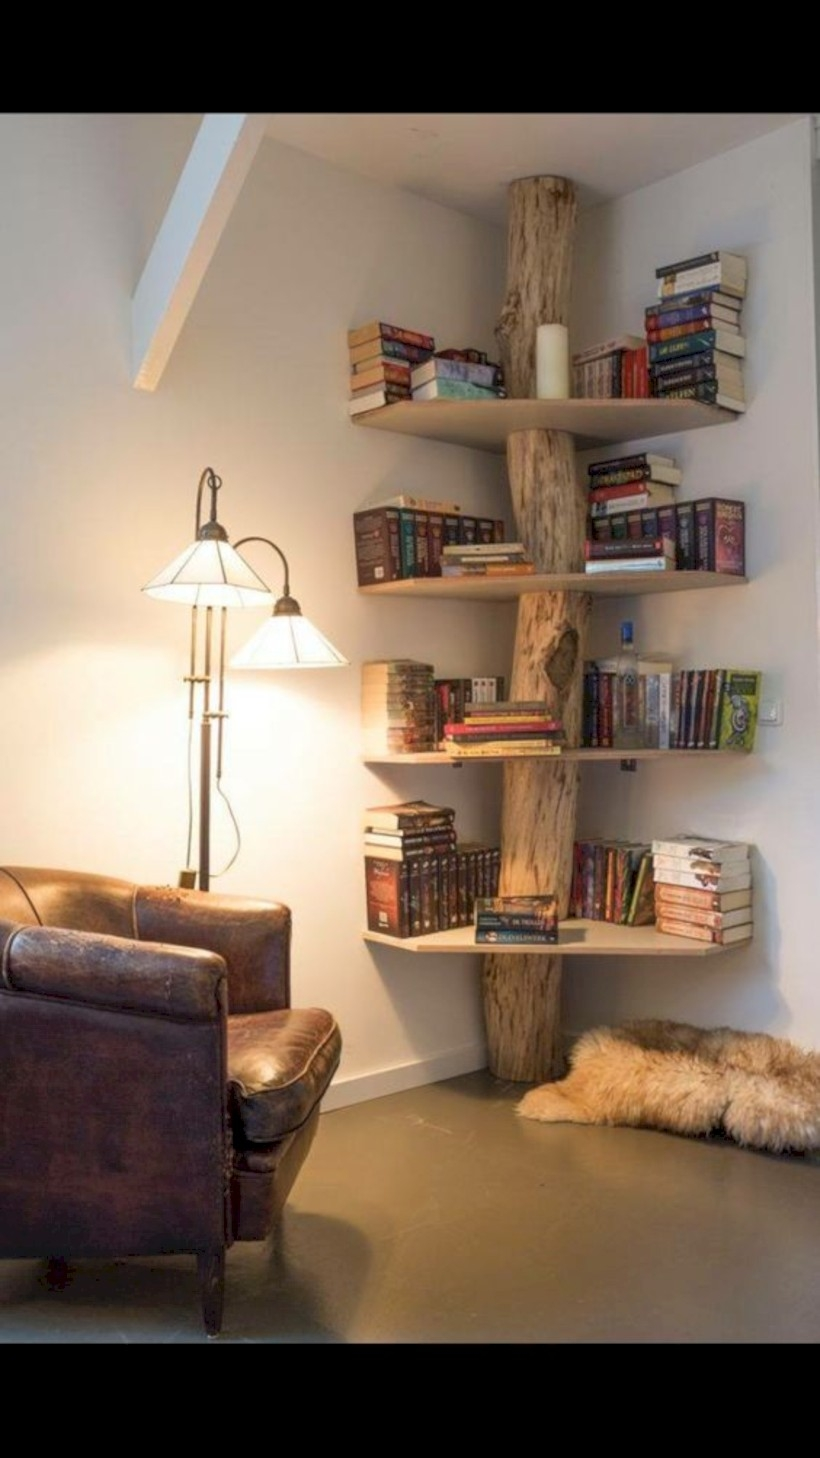 Bookshelf teamed with floor lamp and leather armchair